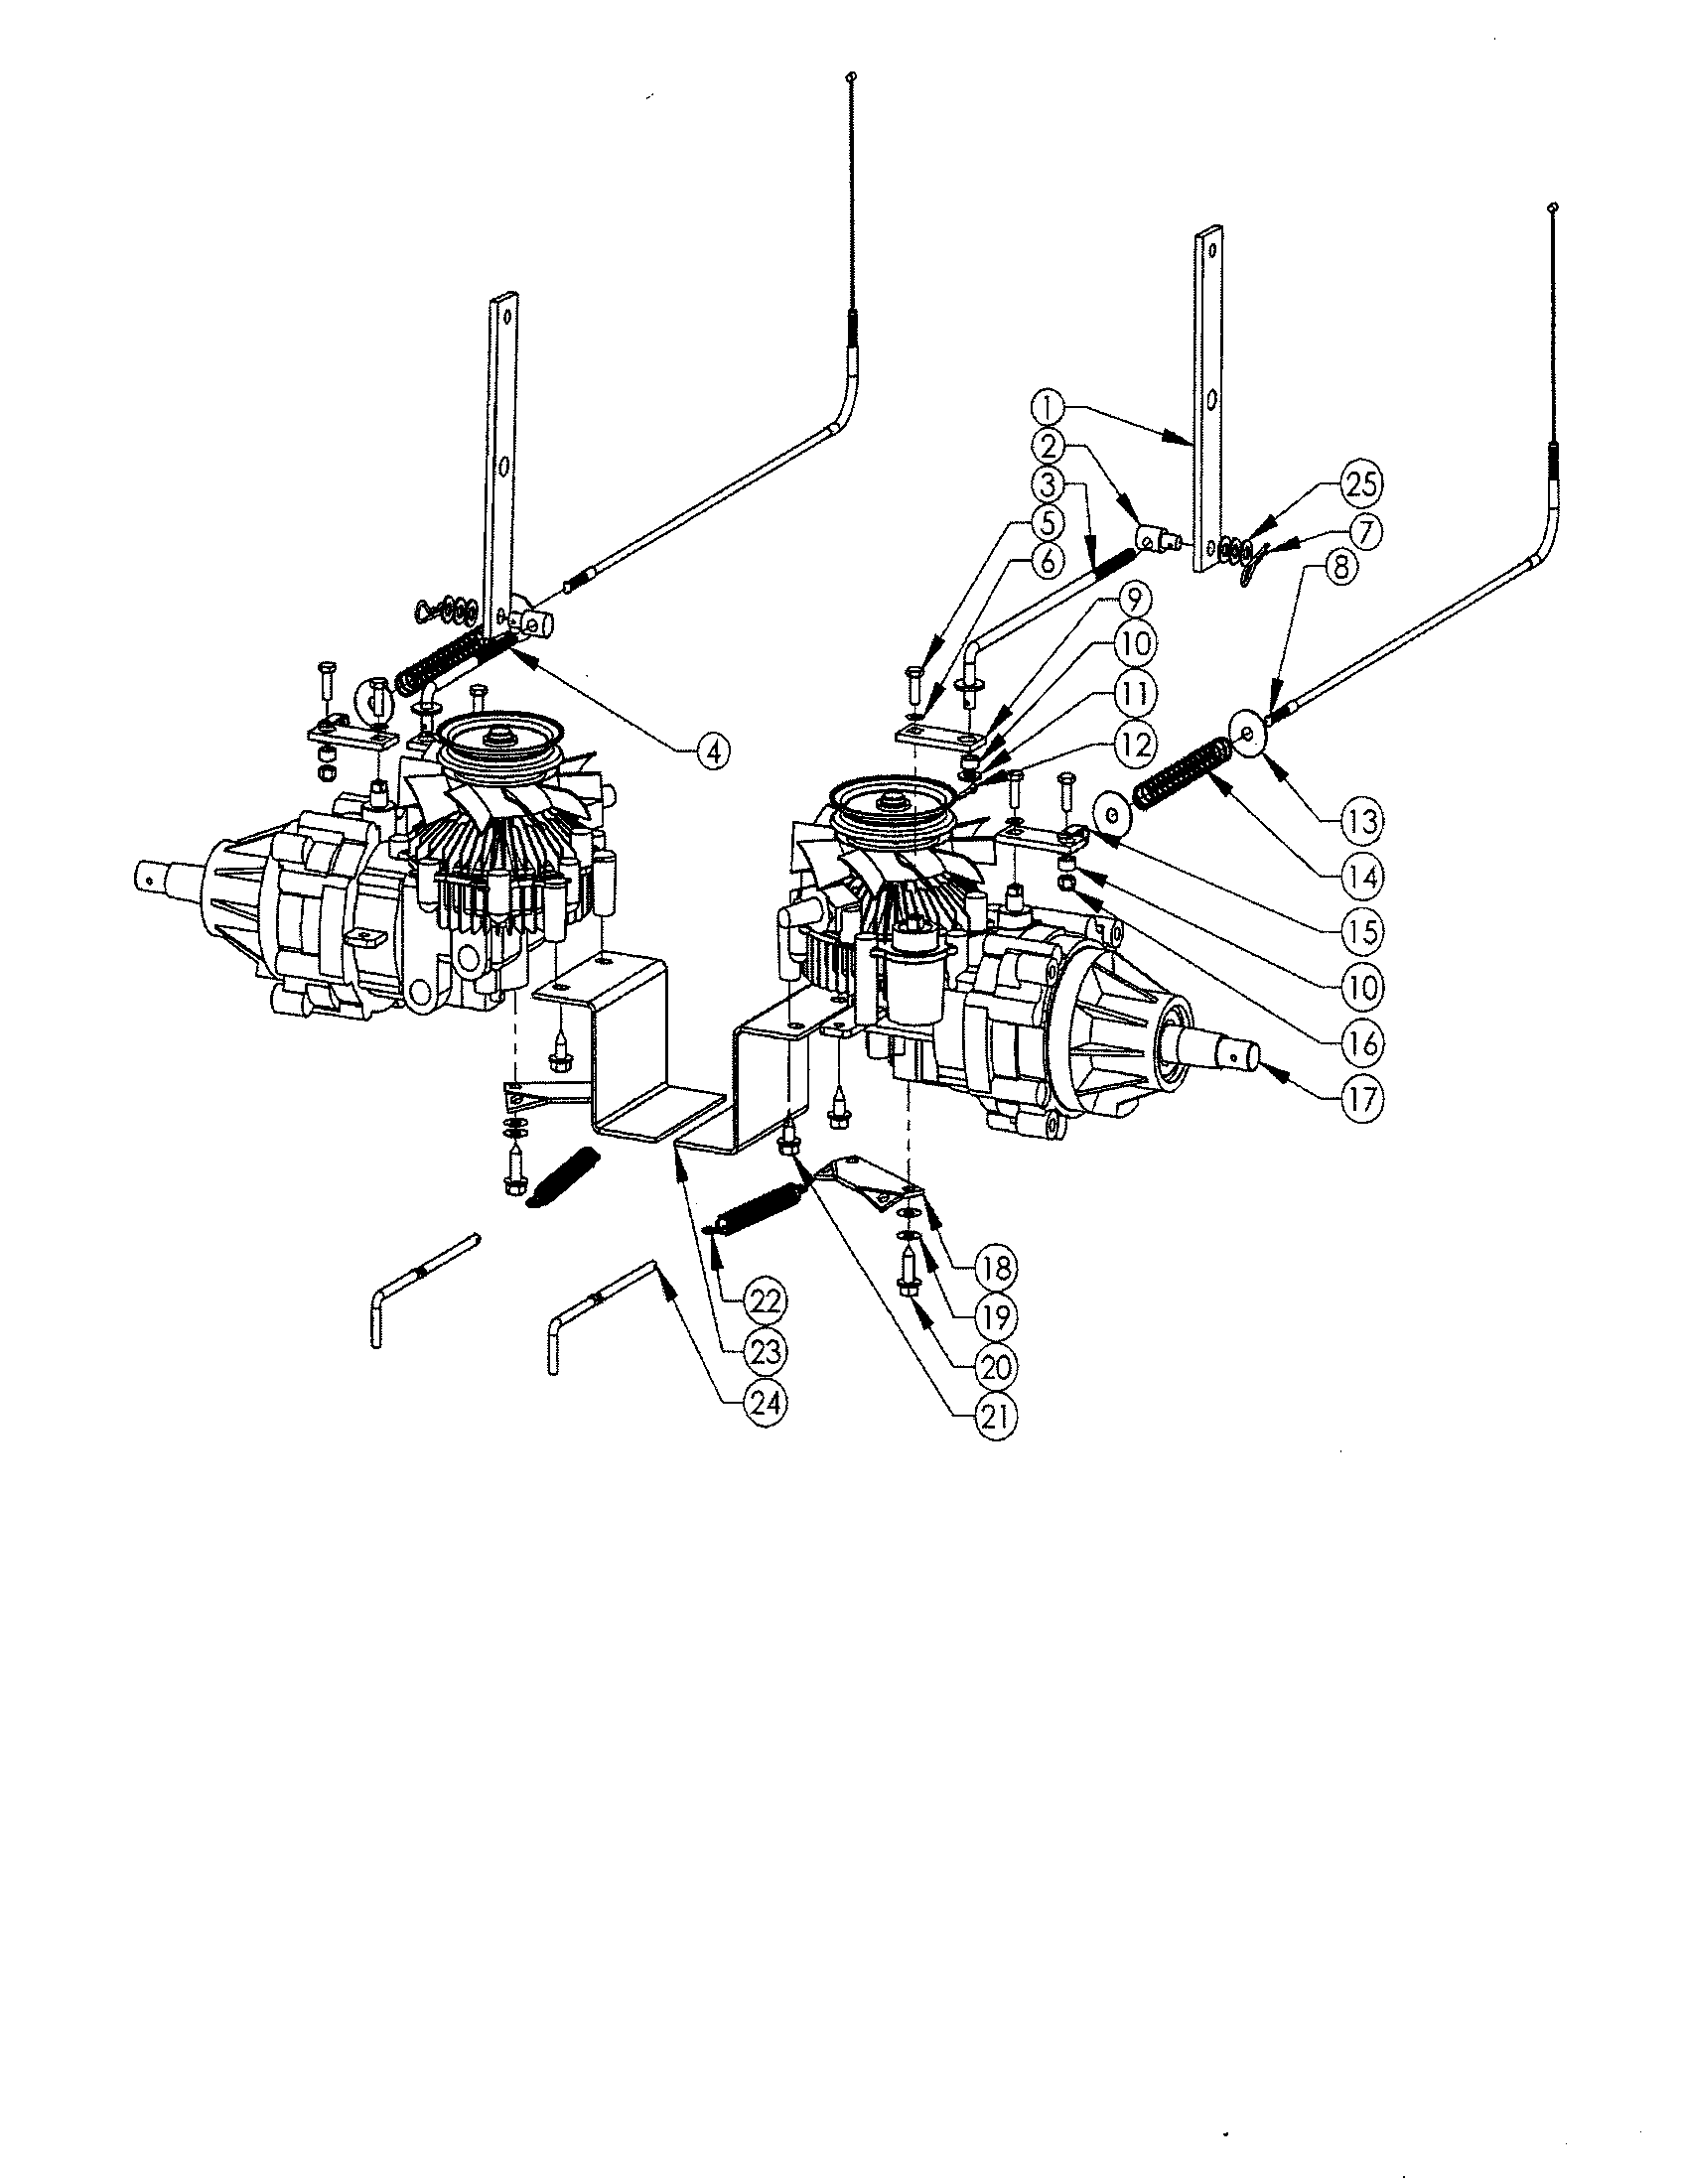 hight resolution of 60 swisher mower wiring diagram